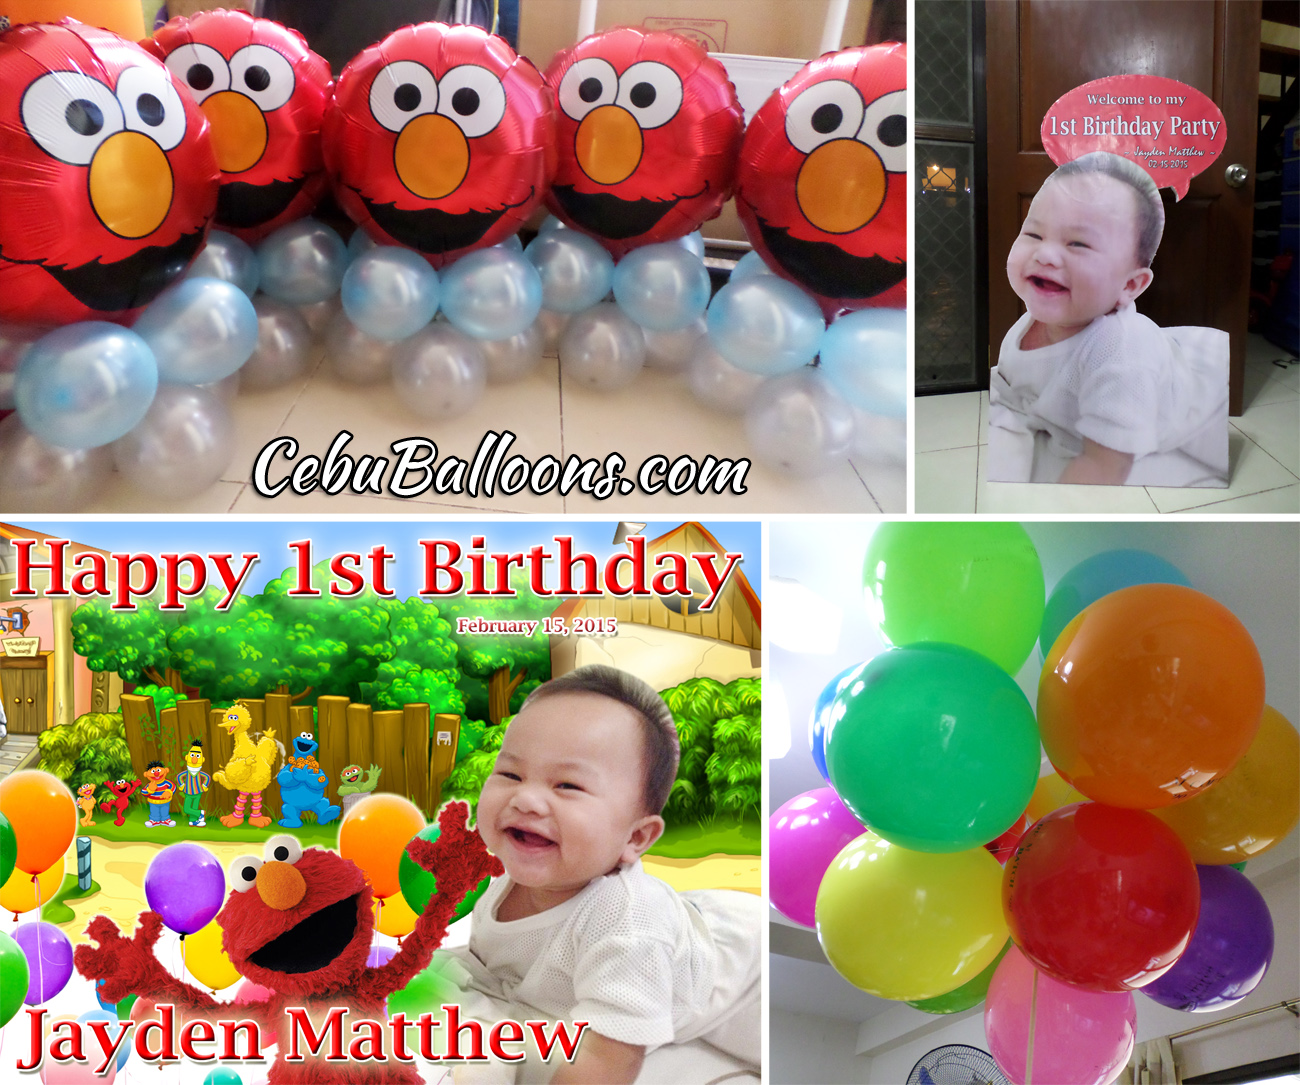 Elmo Theme Party Decors For Jayden Matthews 1st Birthday